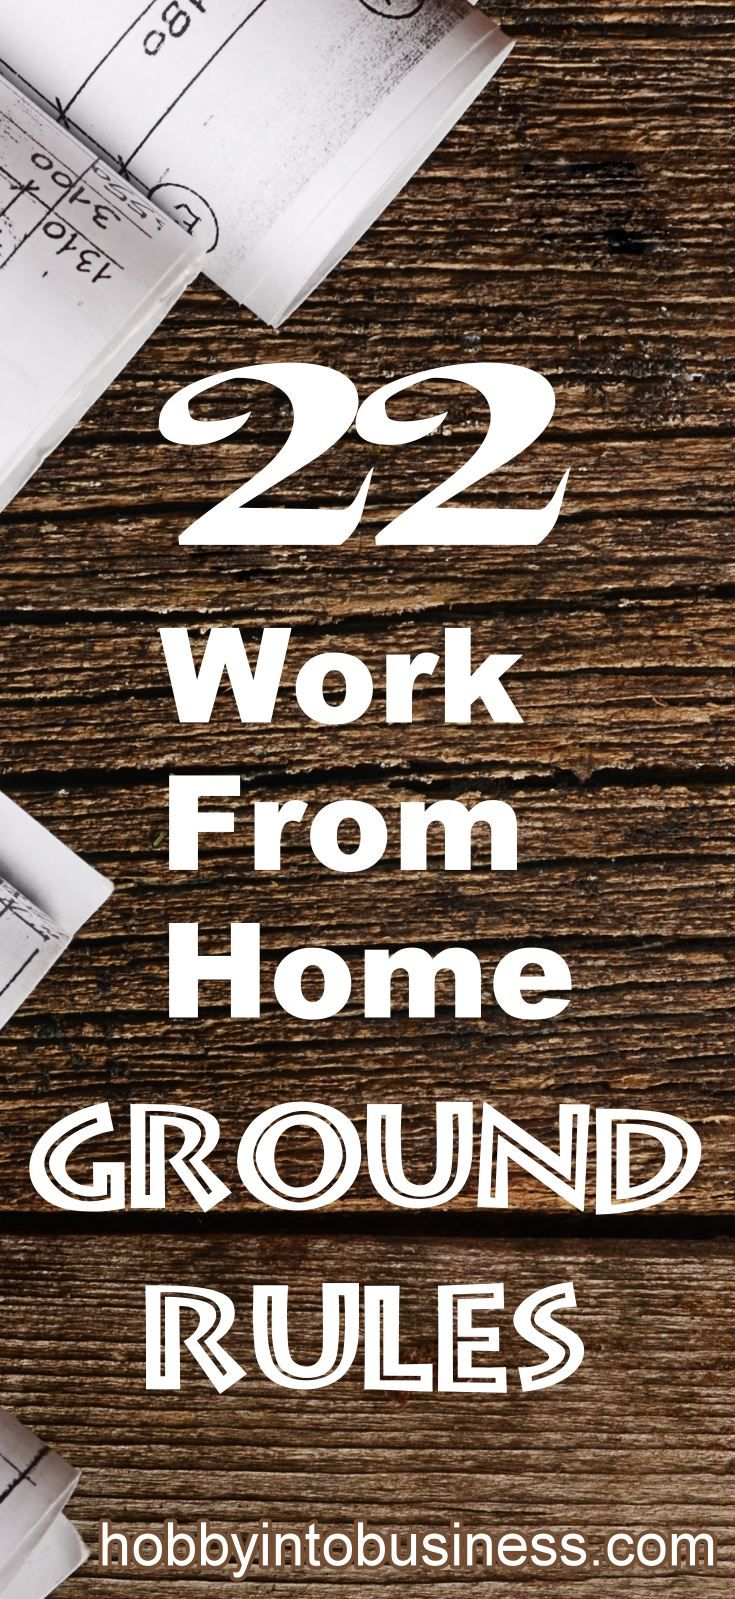 22 work from home ground rules i learned the hard way turn your hobby into from homebusiness - Hobby Into Business Hobby Work Turning Hobby Into Business